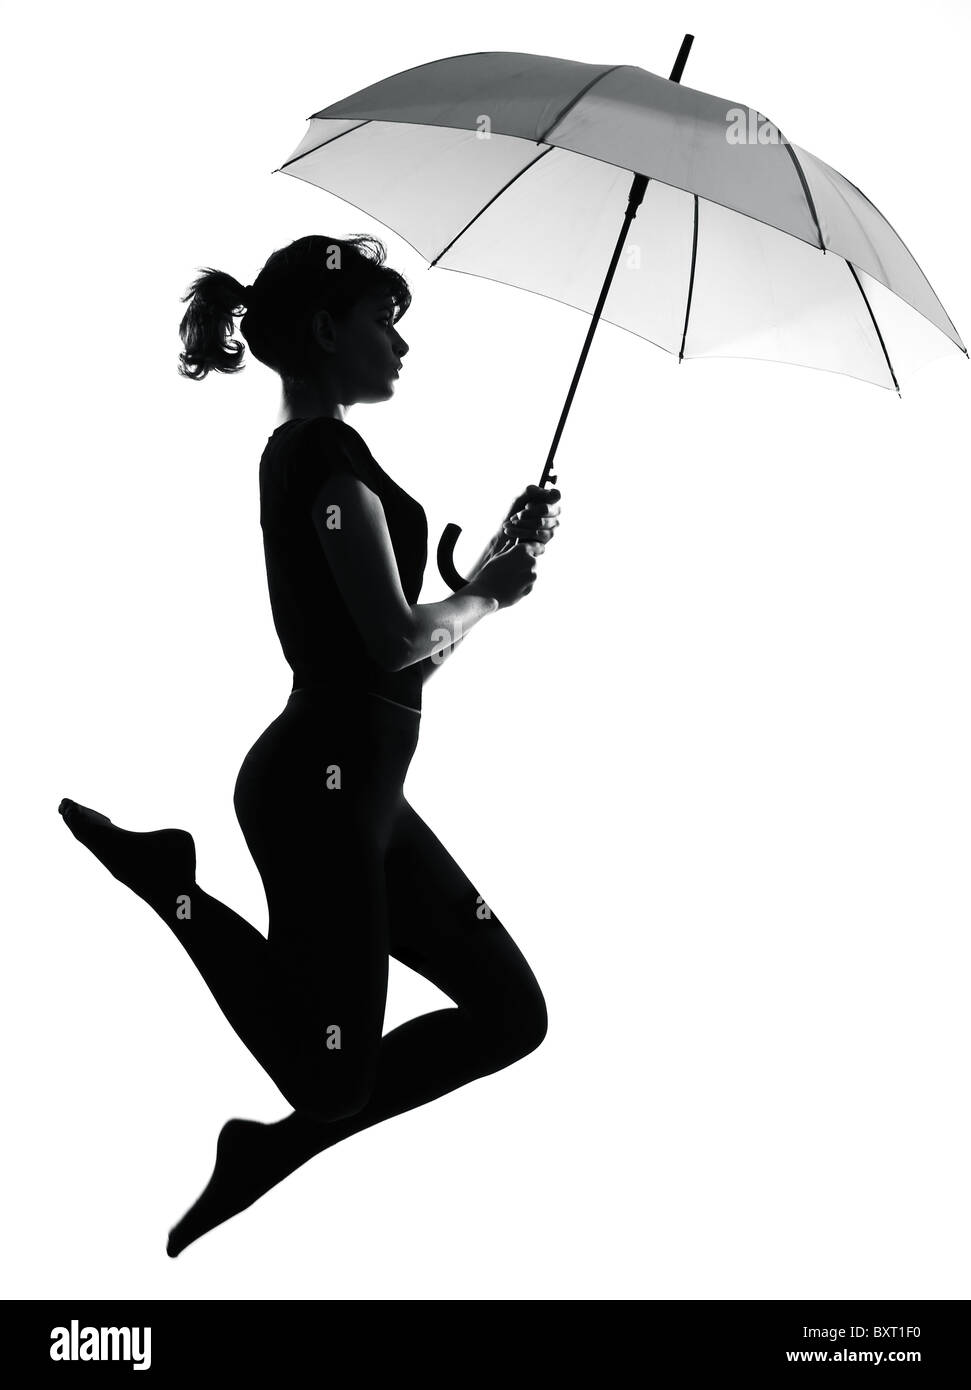 full length silhouette in shadow of a young woman flying with open umbrella  in studio on white background isolated - Stock Image